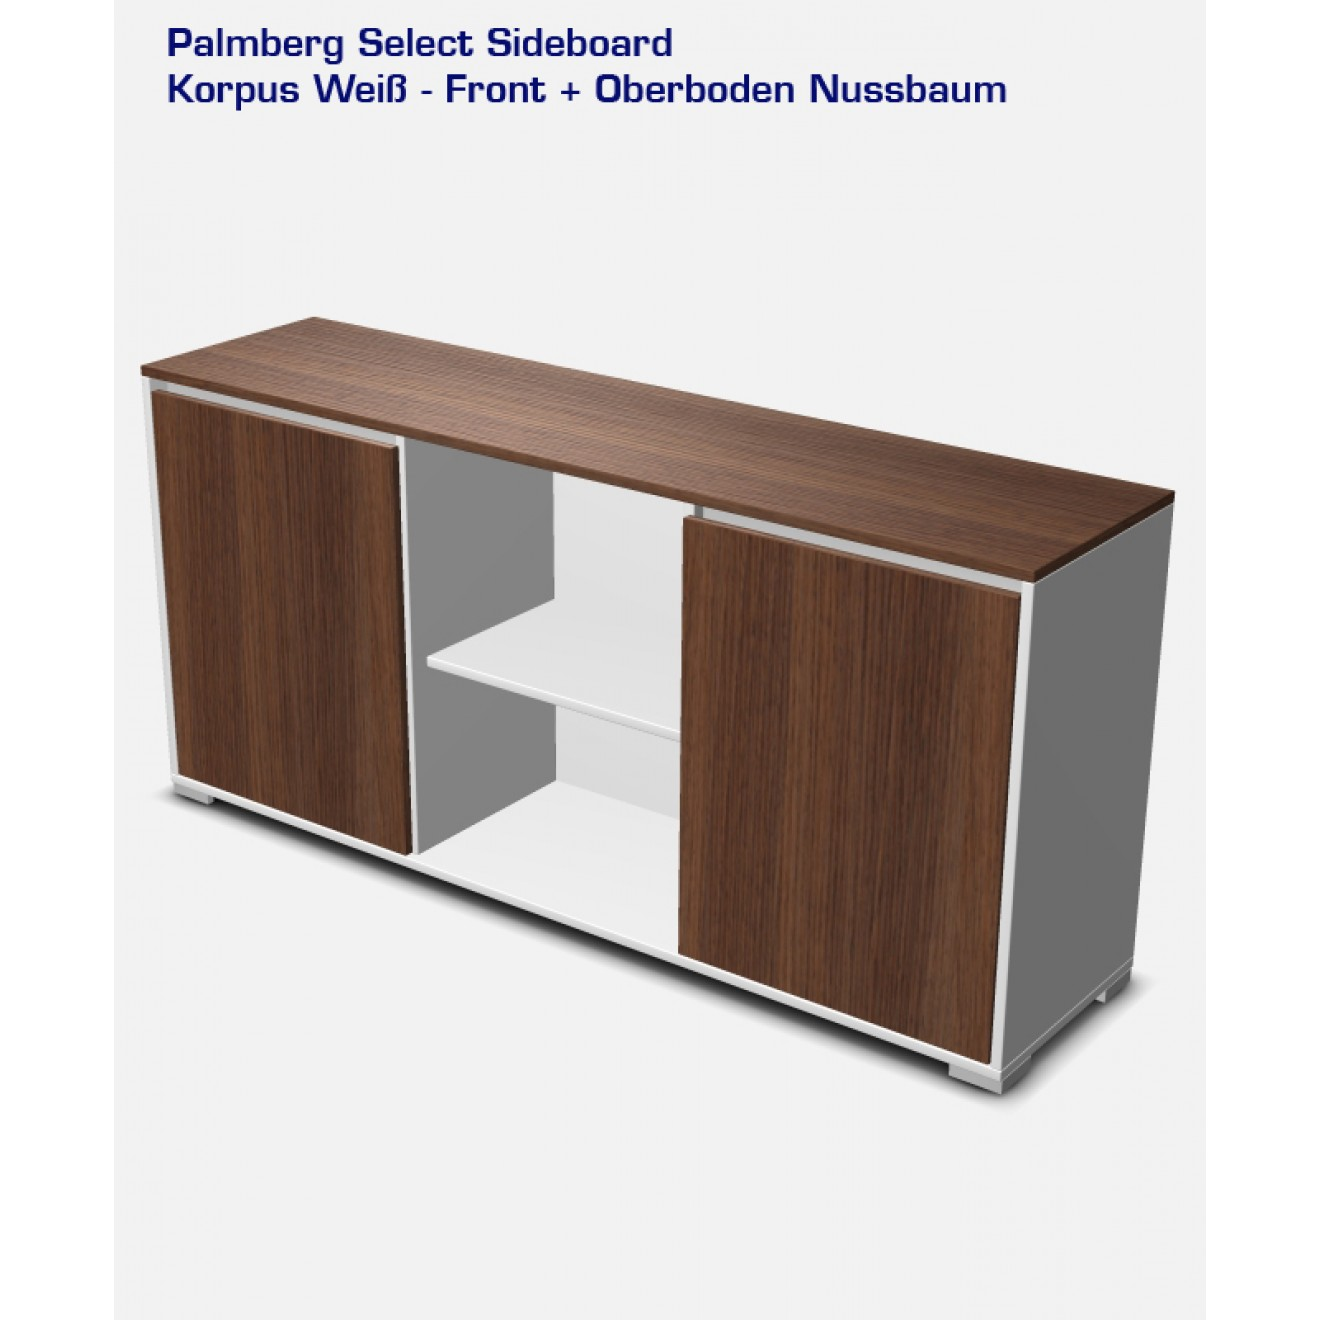 Palmberg Select Sideboard 84 x 176 cm  offenes-Fach  - SE M2 1760